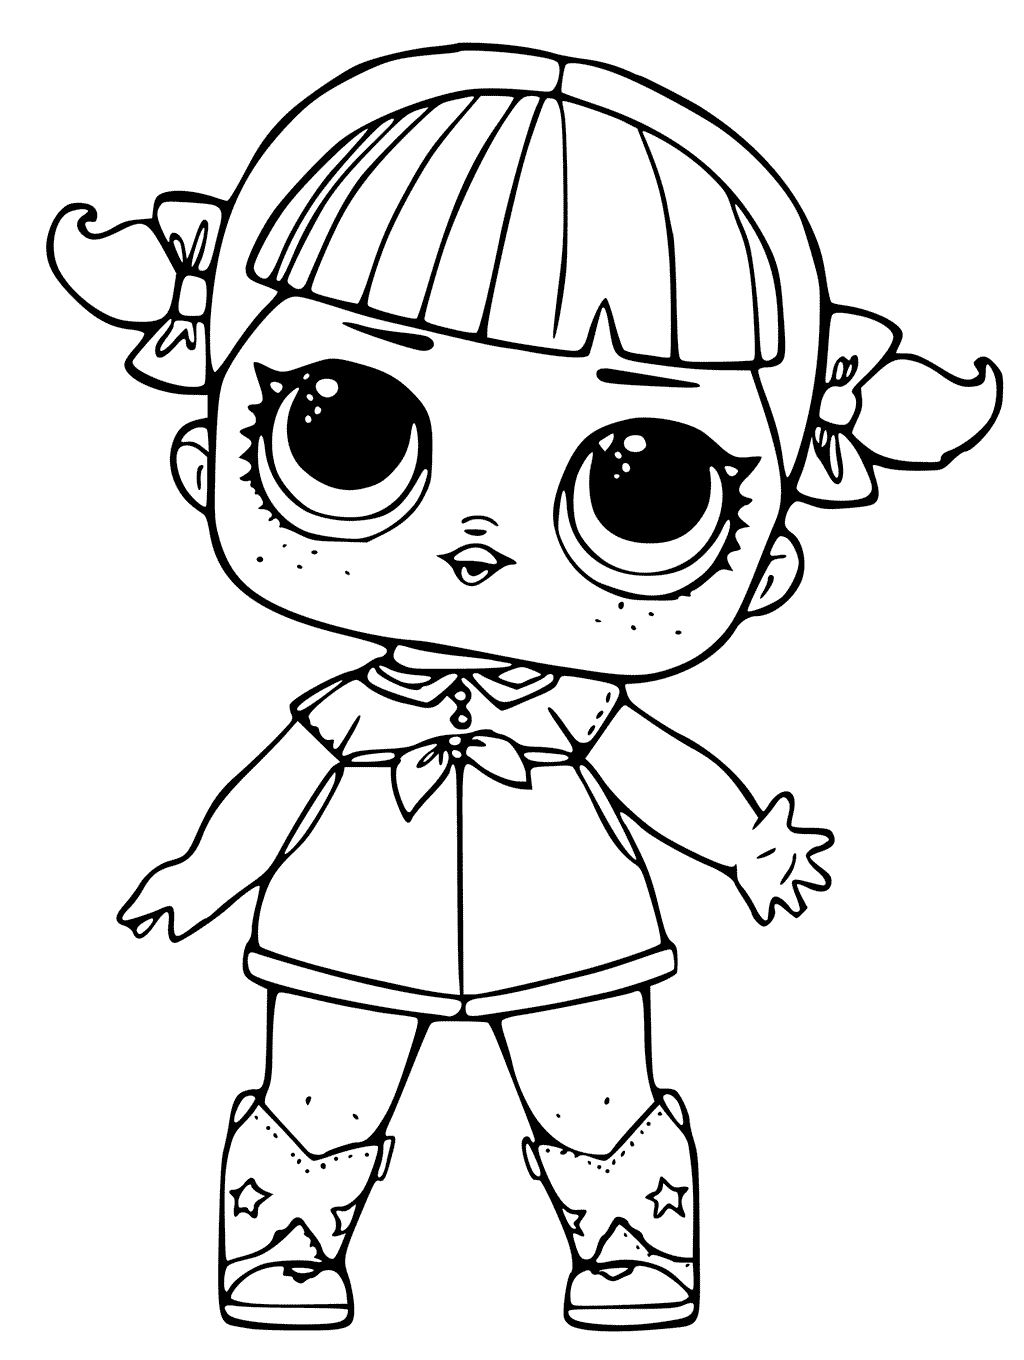 Lol Coloring Pages 10 K Lol Surprise Doll Coloring Pages Cherry Jpg 1 024 1 360 Pixels Lol Dolls Doll Drawing Cheer Captain